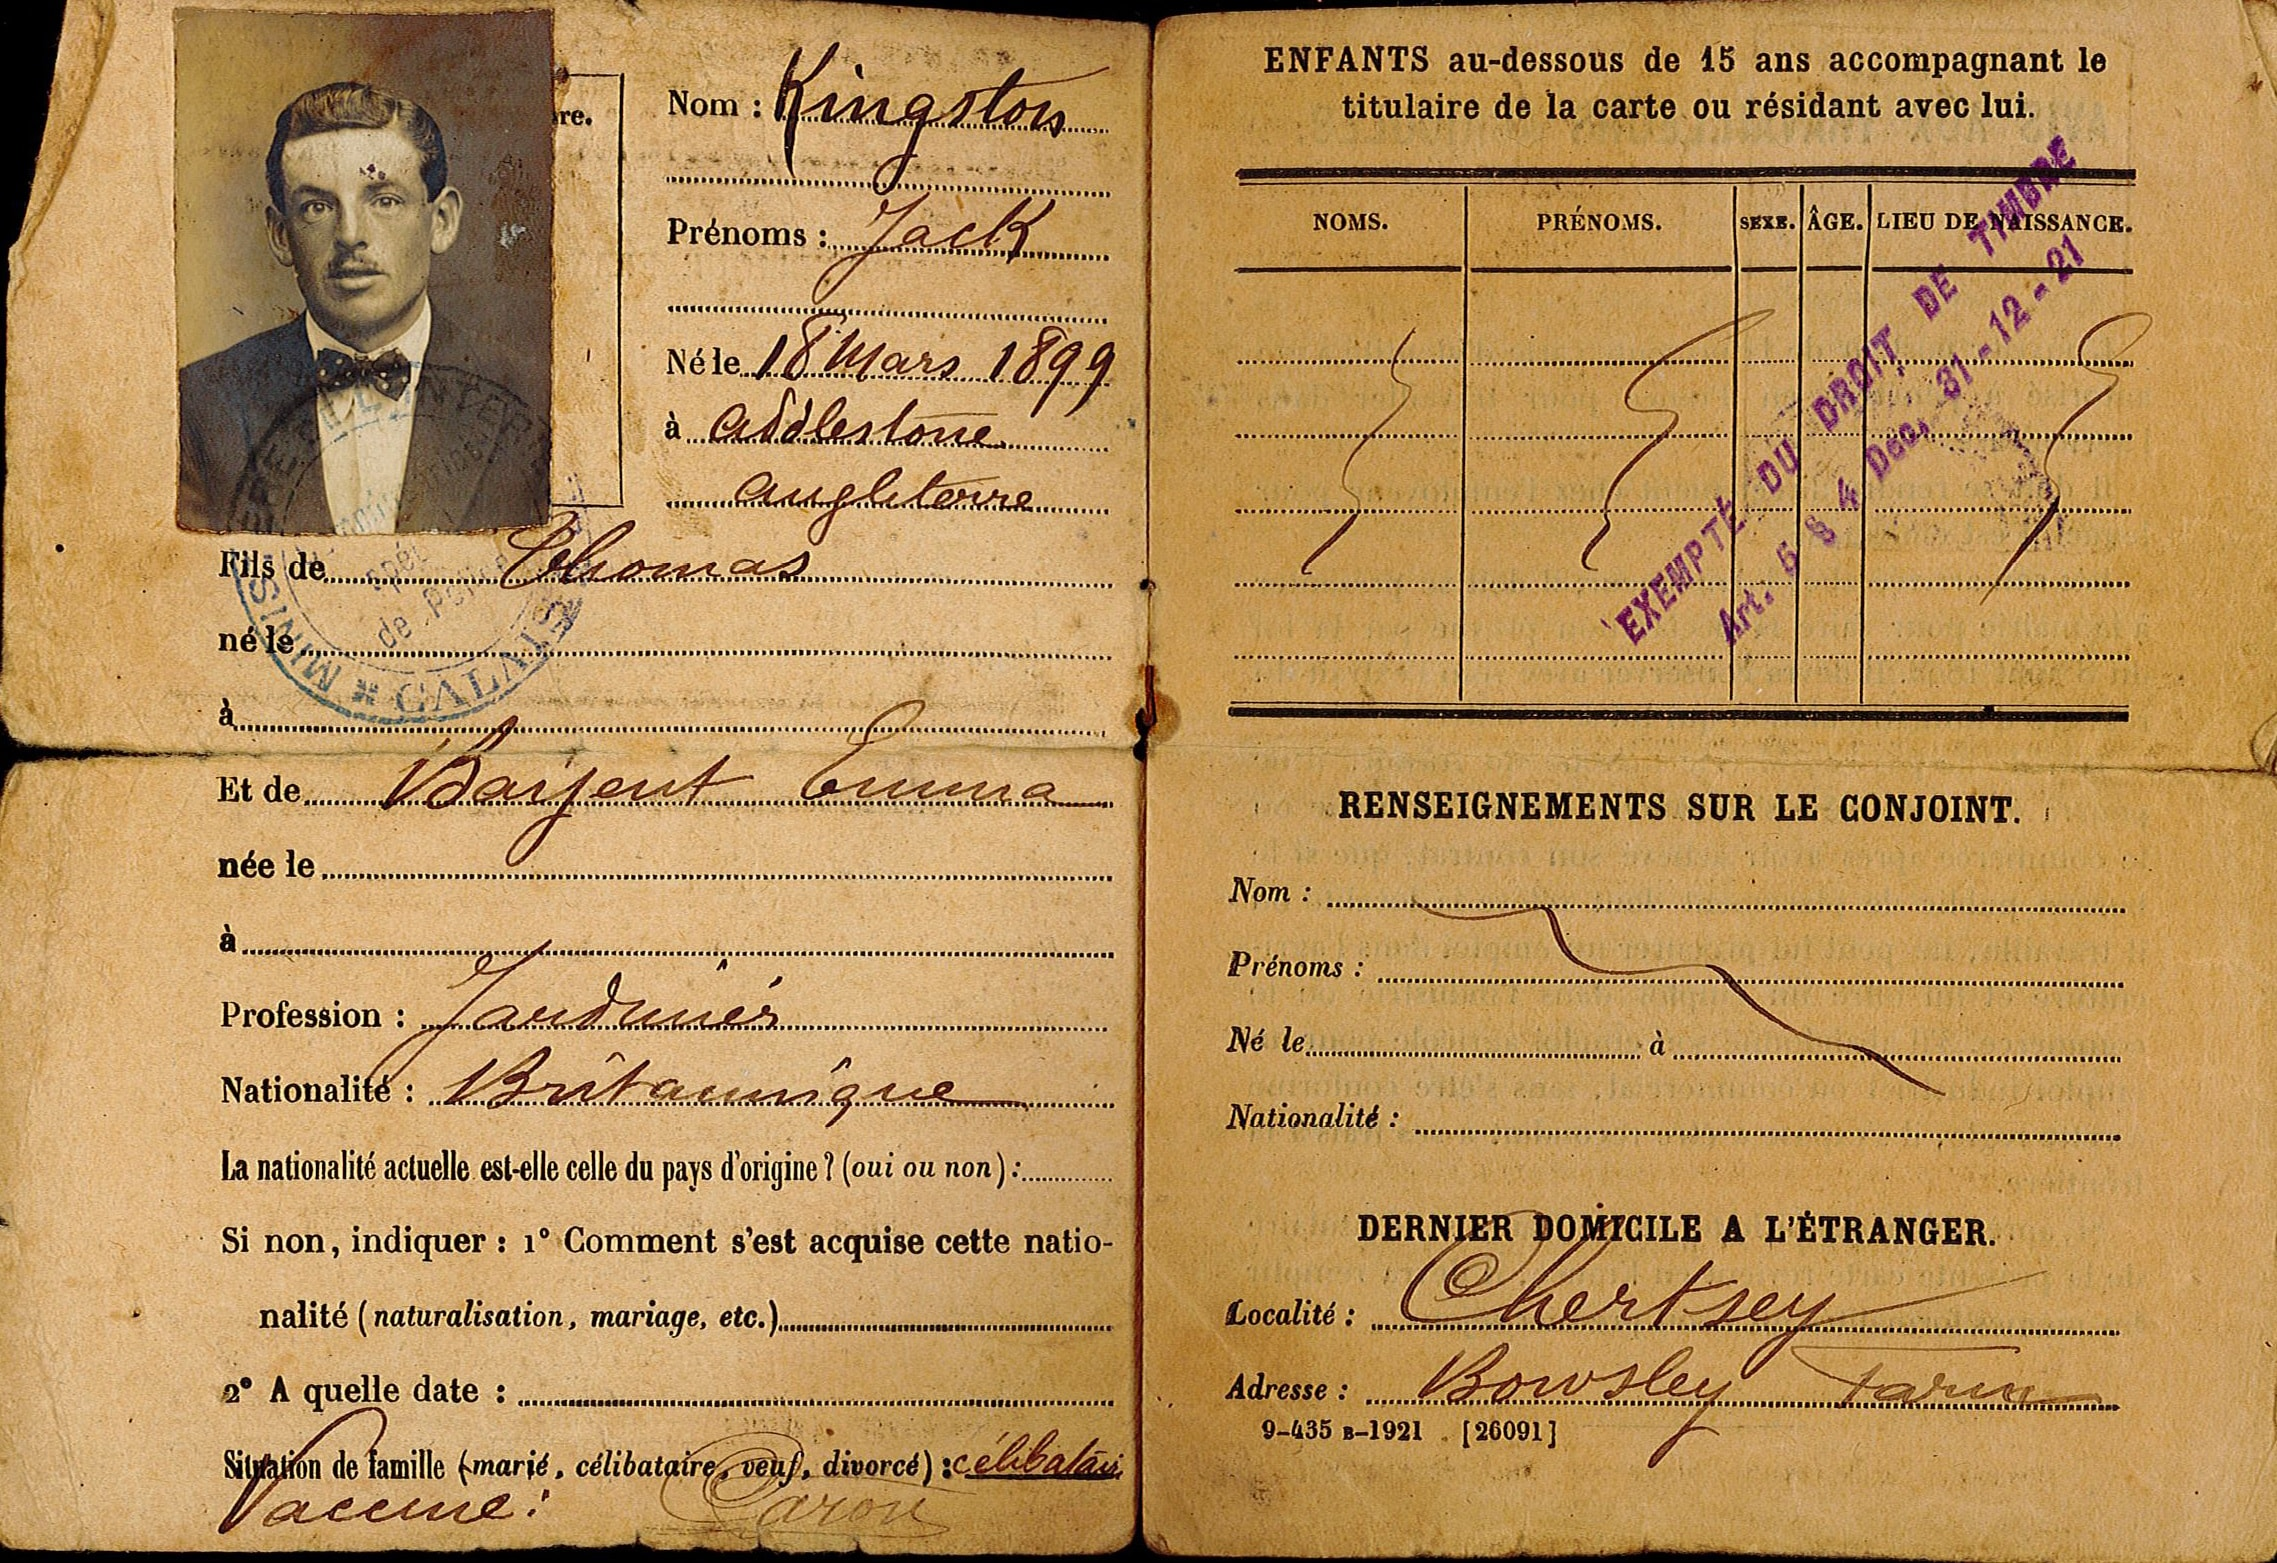 Two pages with photograph of man with moustache wearing bowtie, text in French